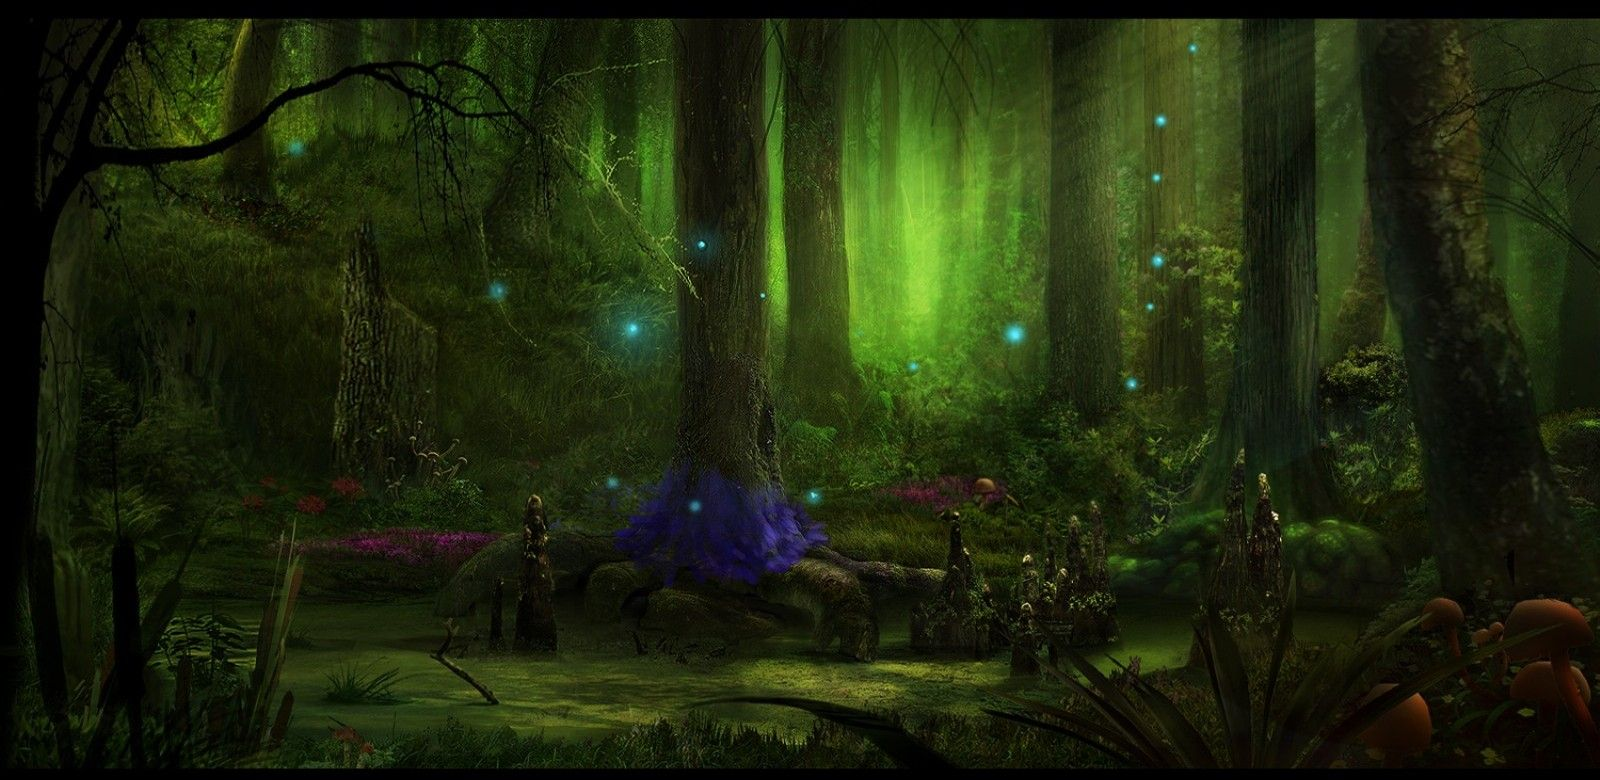 Fairy Tale Forest Viewing Gallery Tree Of Life Artwork Fantasy Art Landscapes Fantasy Landscape